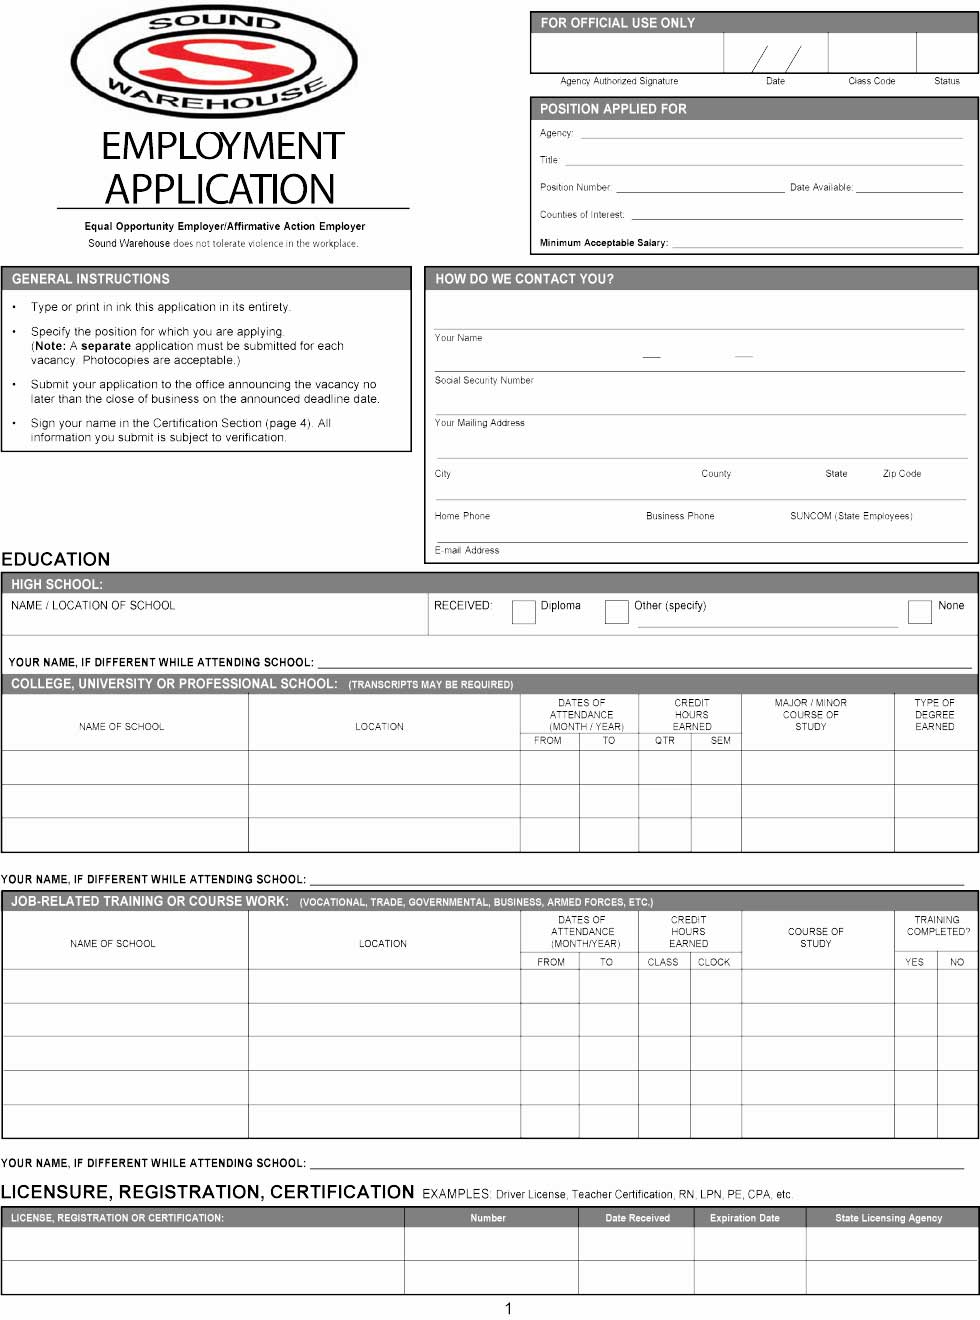 Sound Warehouse Employment Application